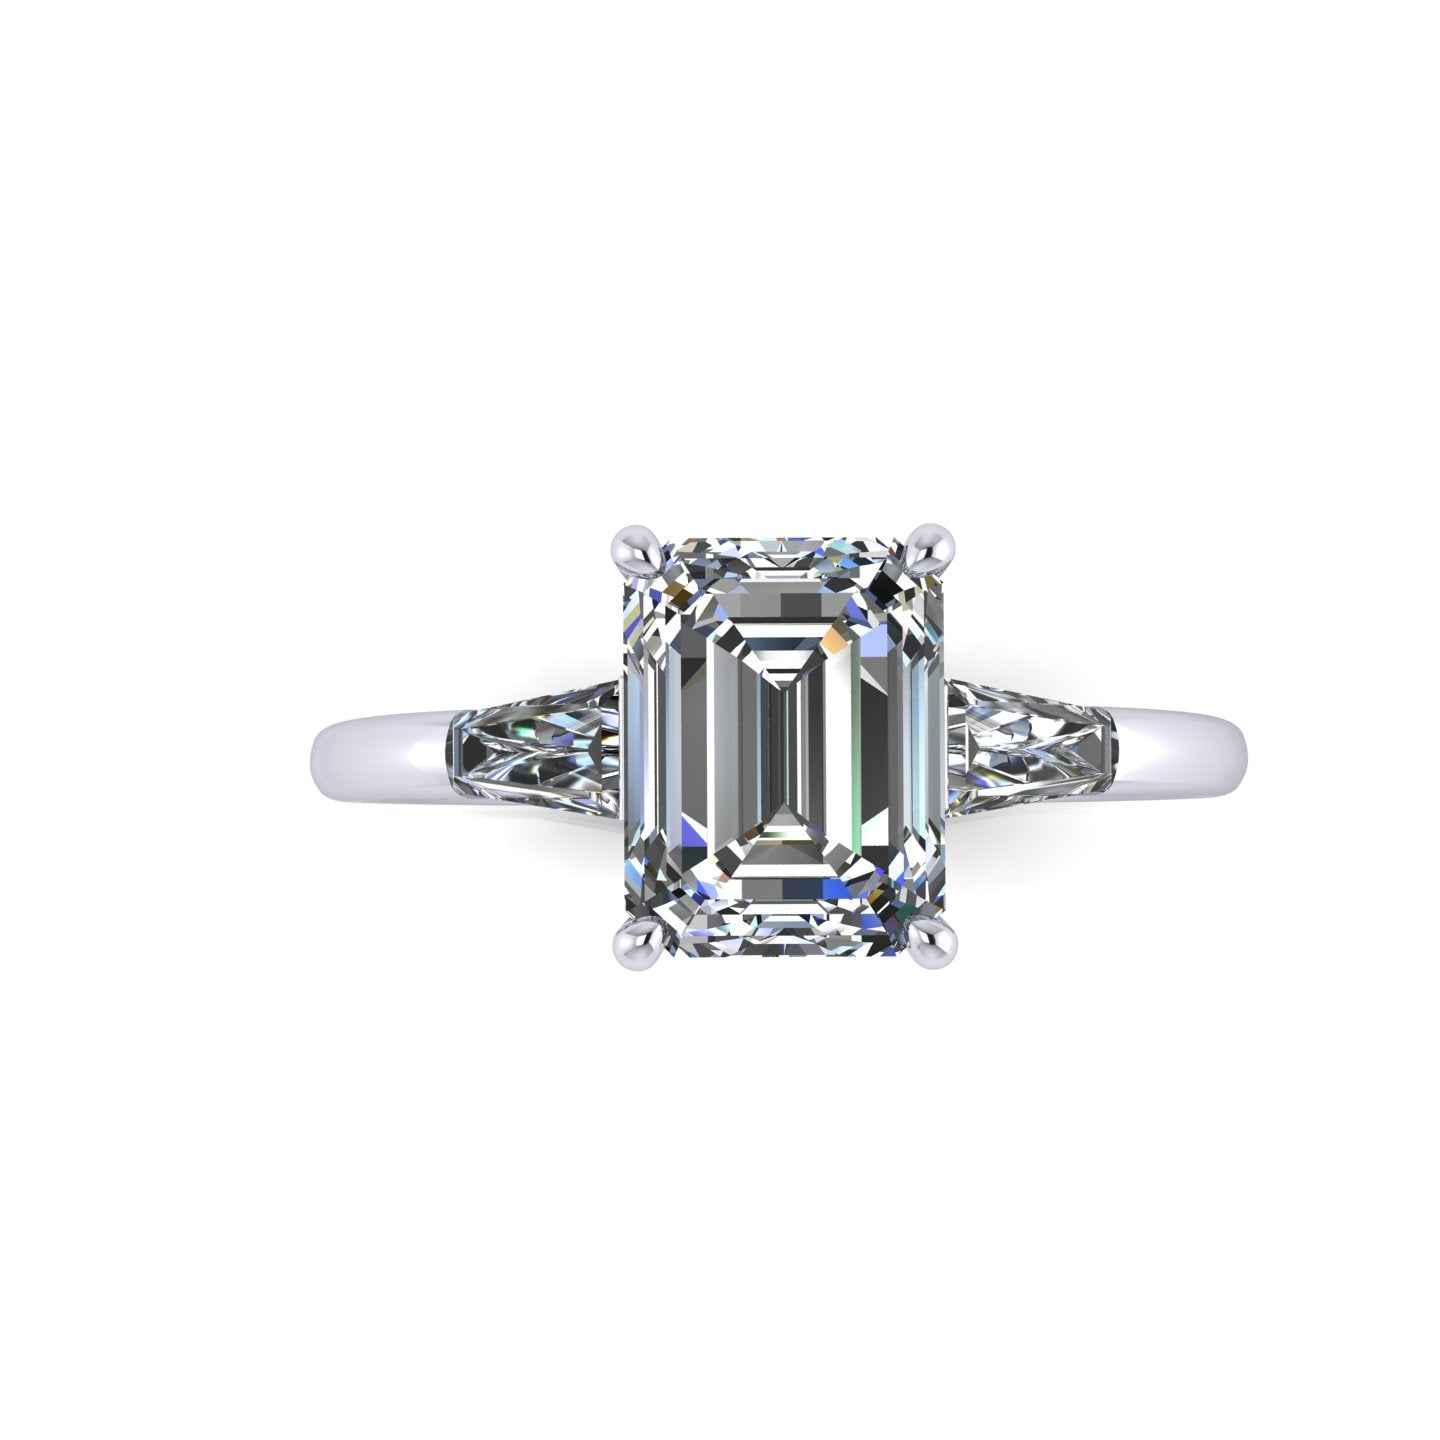 b7899005fe8e4 SIGNATURE EMERALD CUT with TAPERED BAGUETTES ENGAGEMENT RING ...